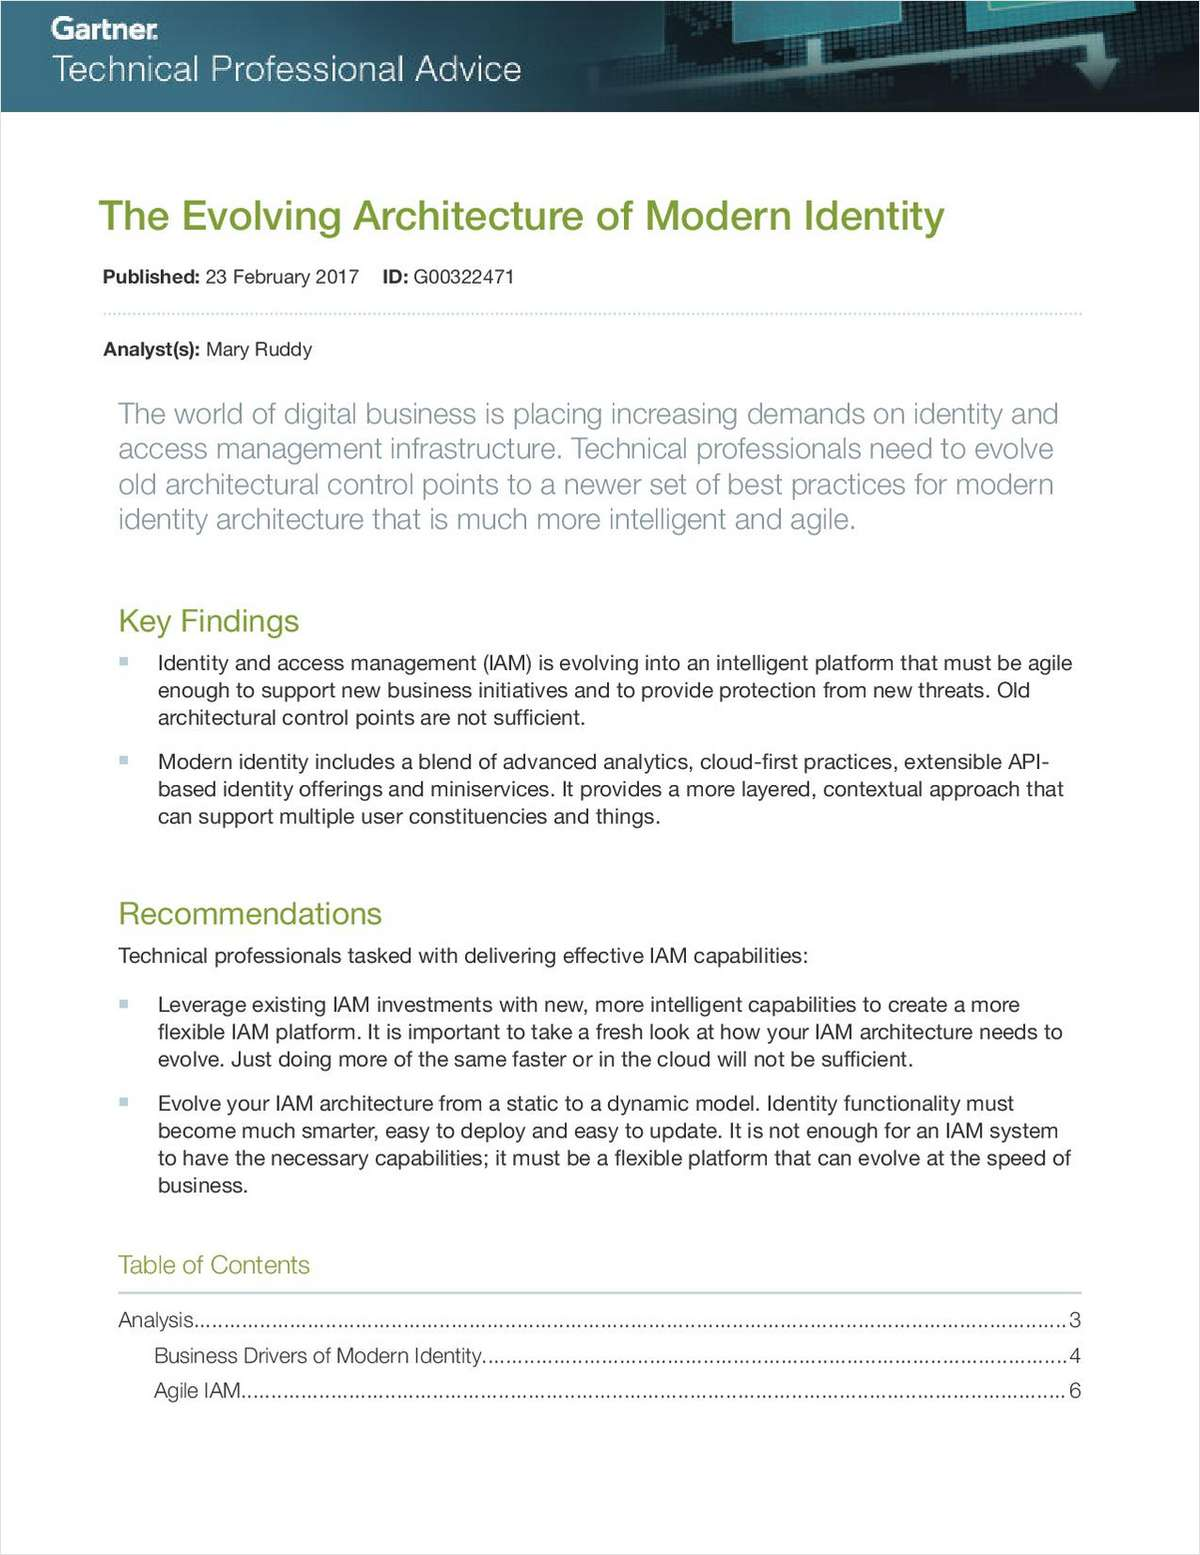 The Evolving Architecture of Modern Identity